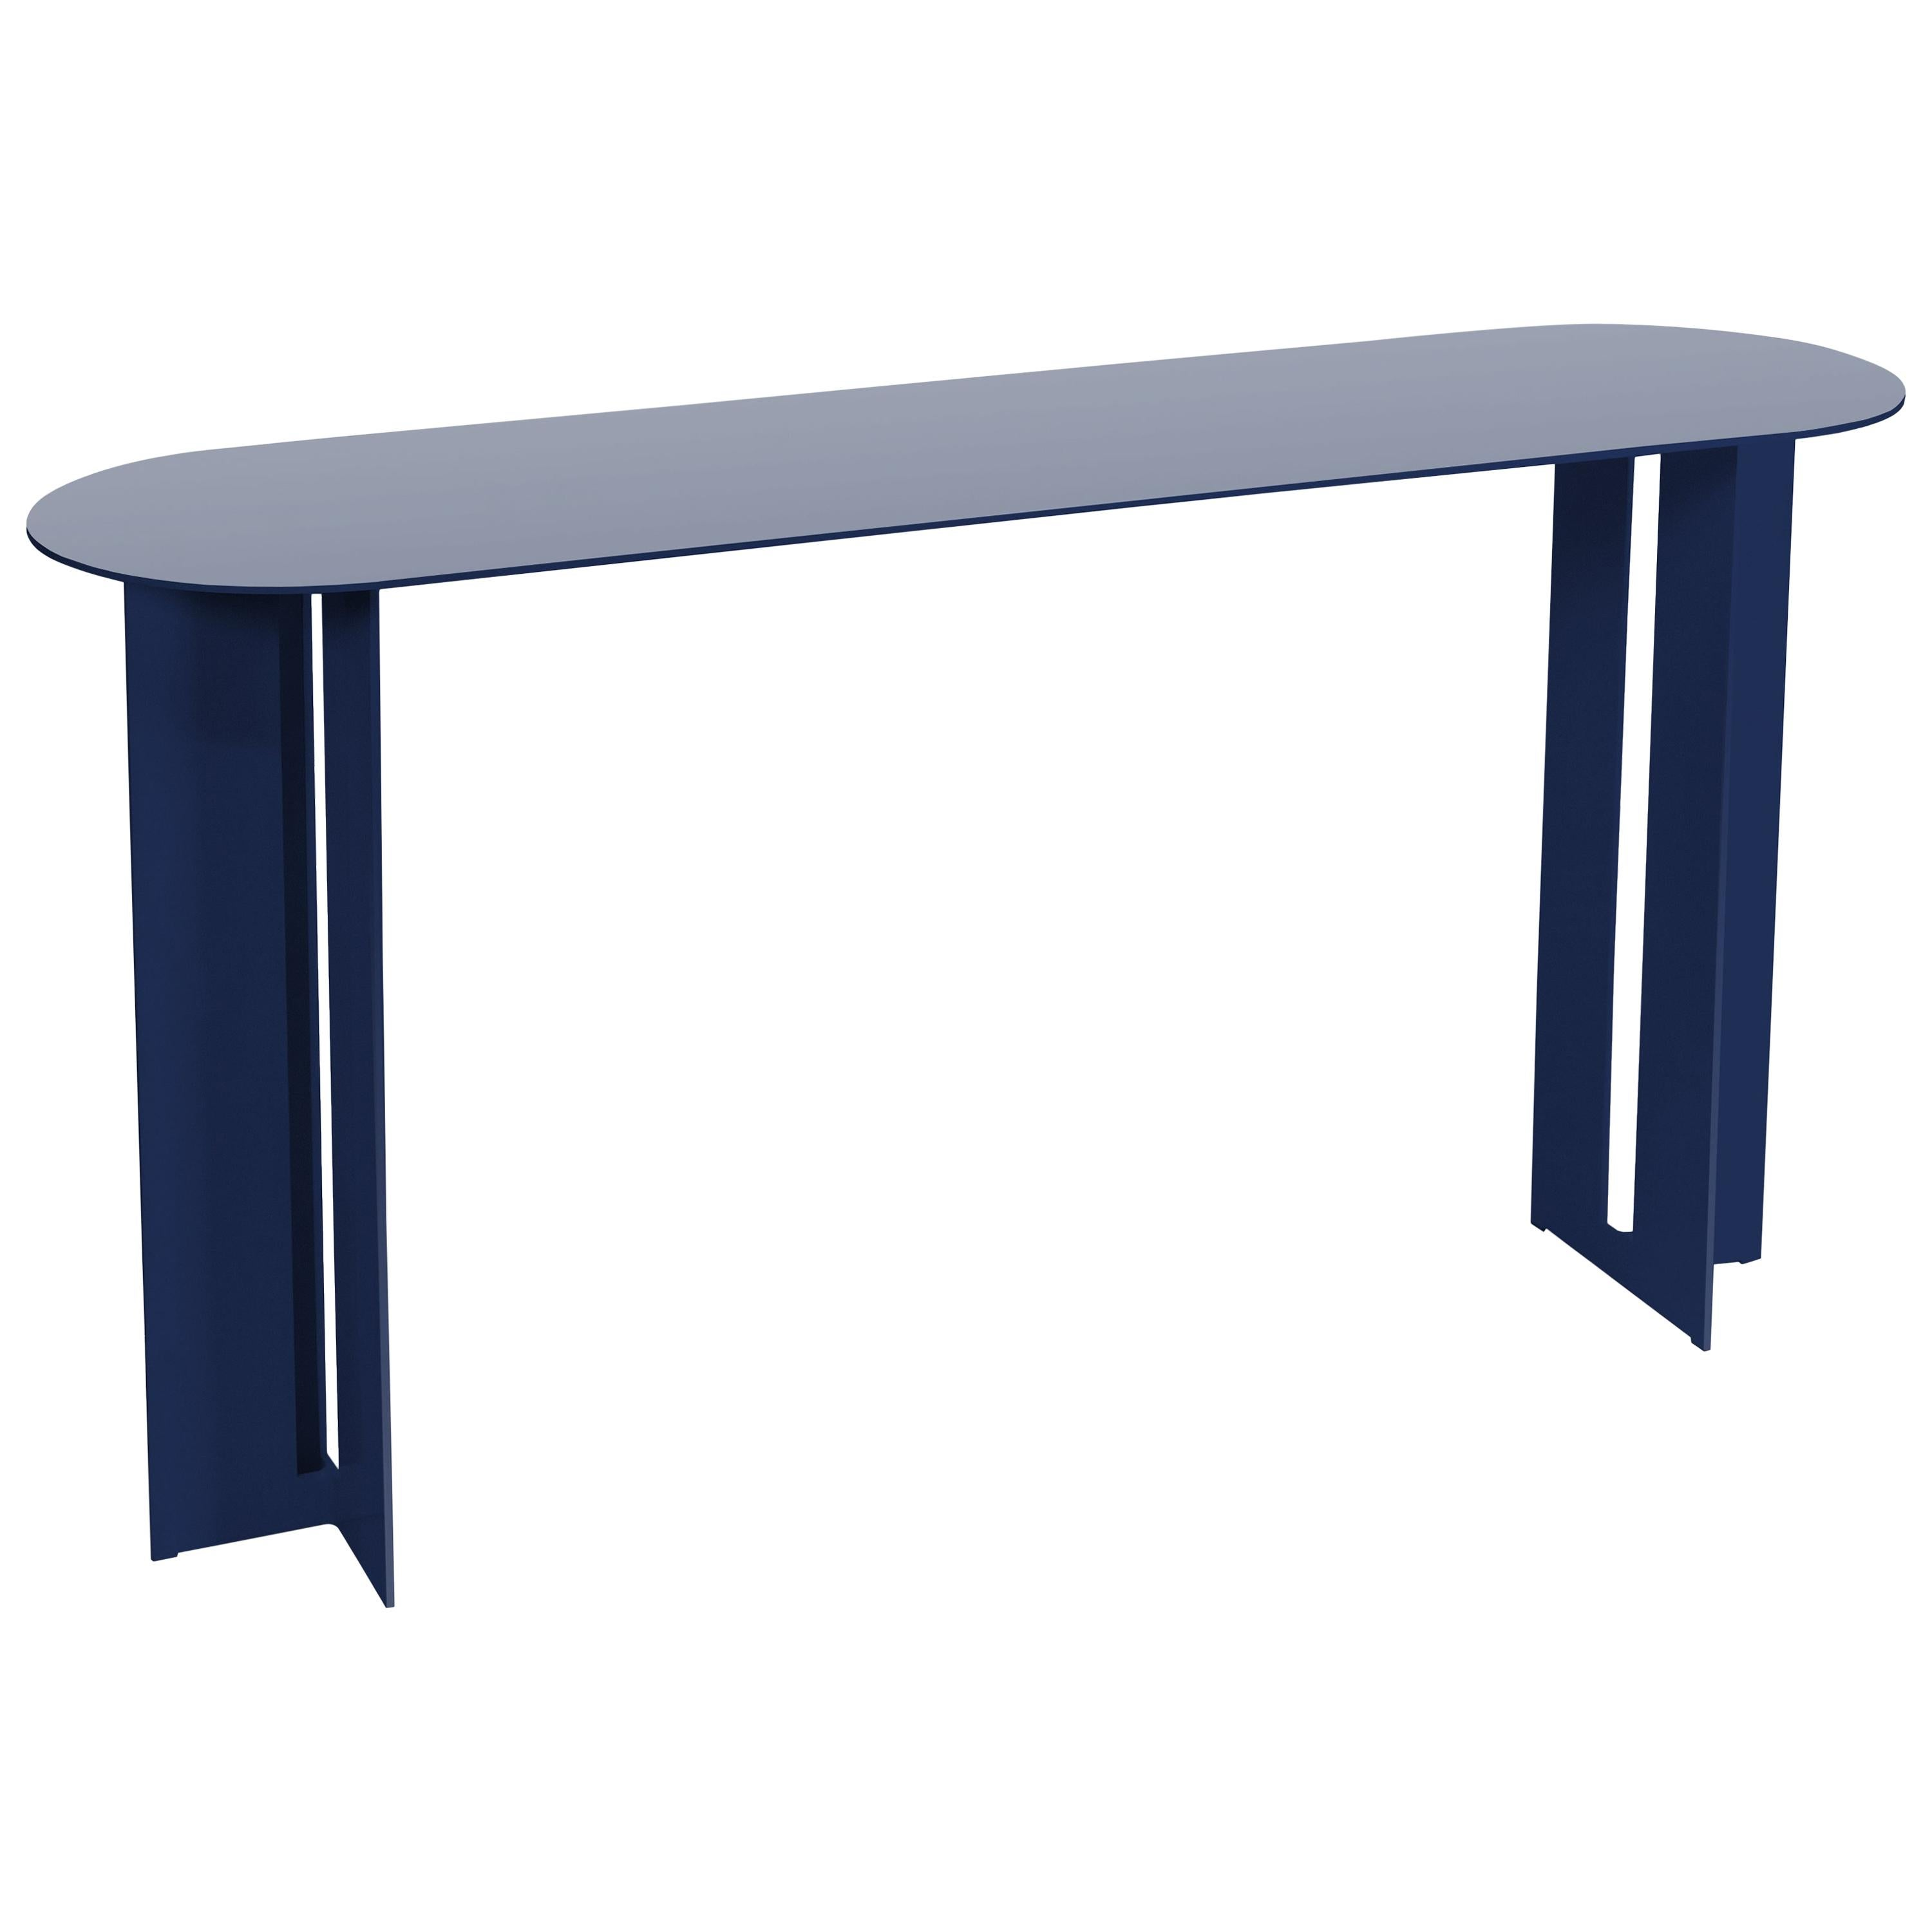 Mers Console Table in Powdercoat Aluminum Pacific Blue